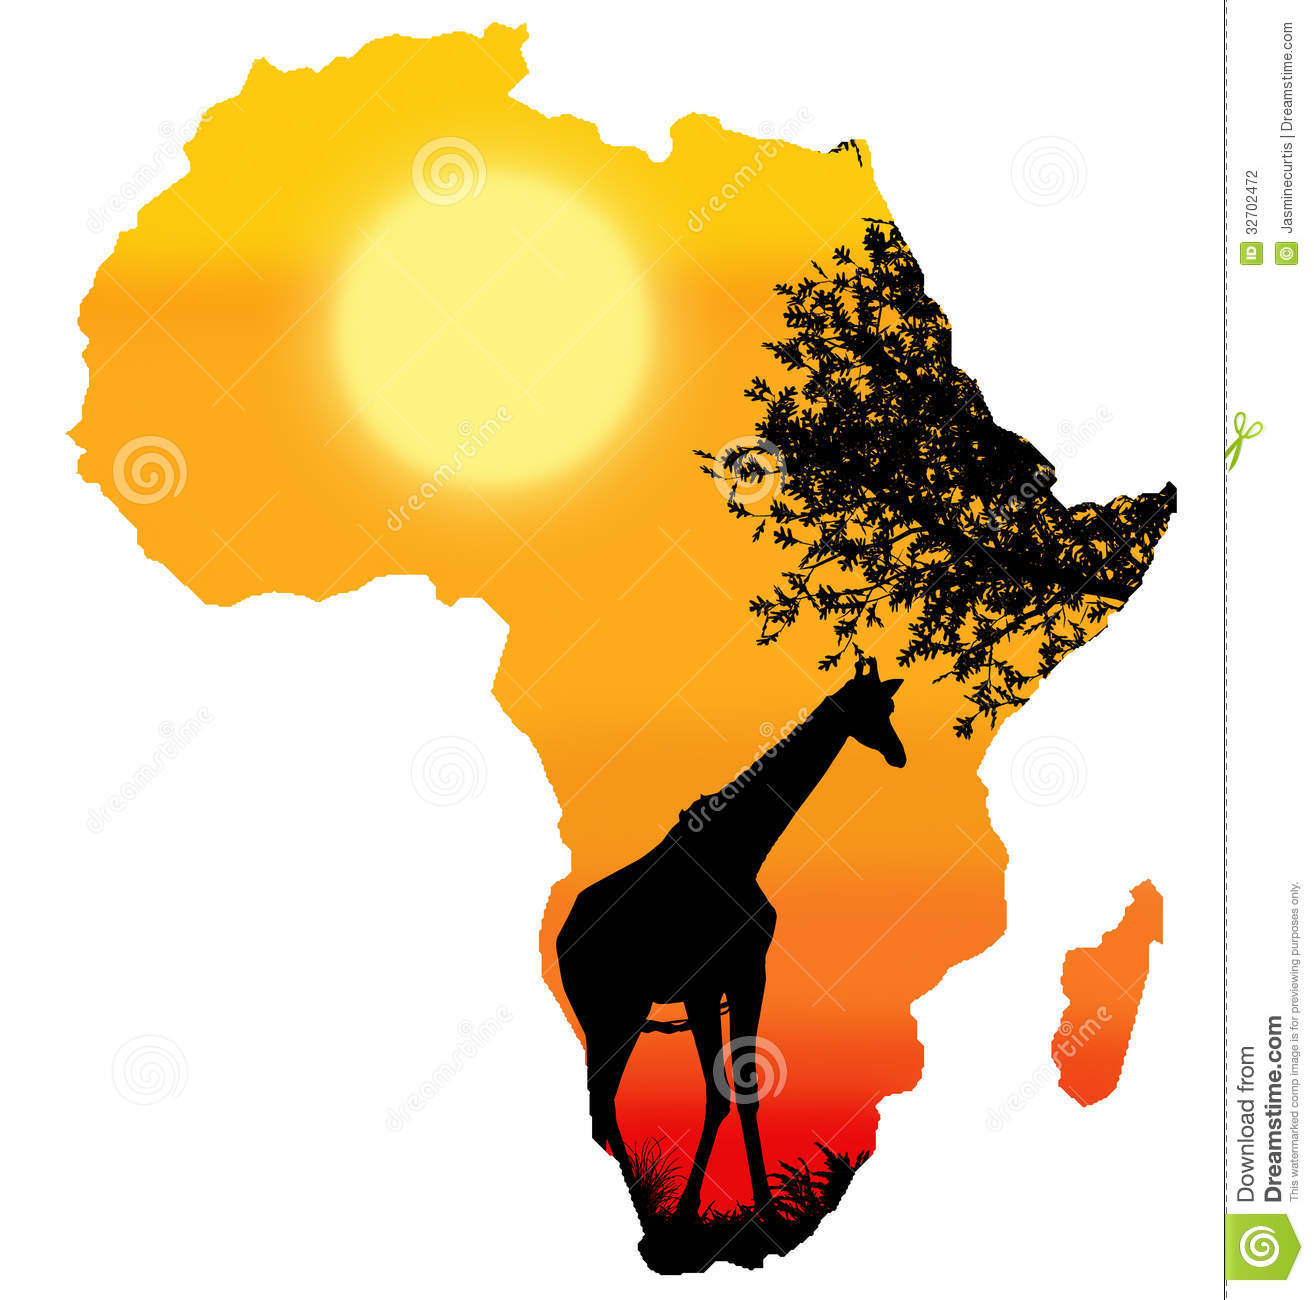 Africa Clipart Africa / safari silhouette: galleryhip.com/africa-clipart.html